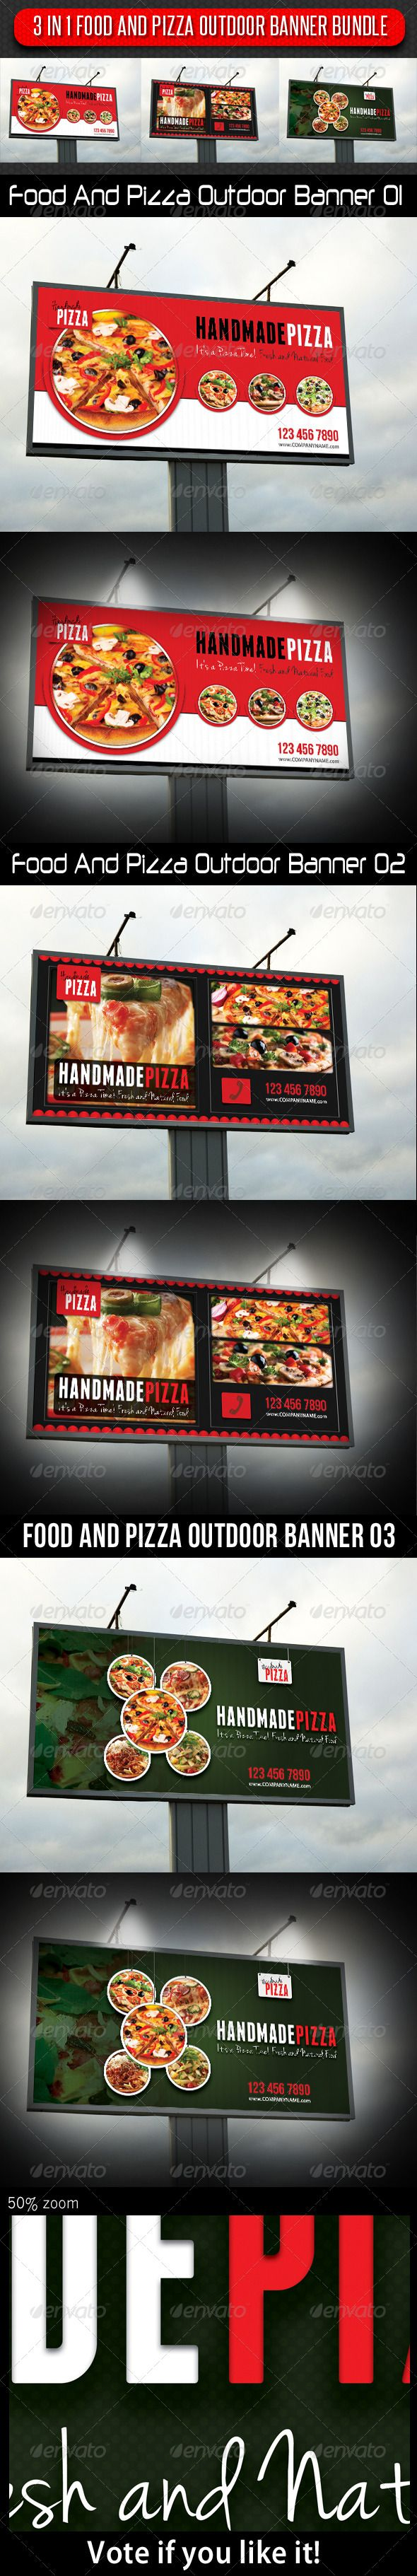 Banner banners banner poles outdoor display cheap custom - 3 In 1 Food And Pizza Outdoor Banner Bundle